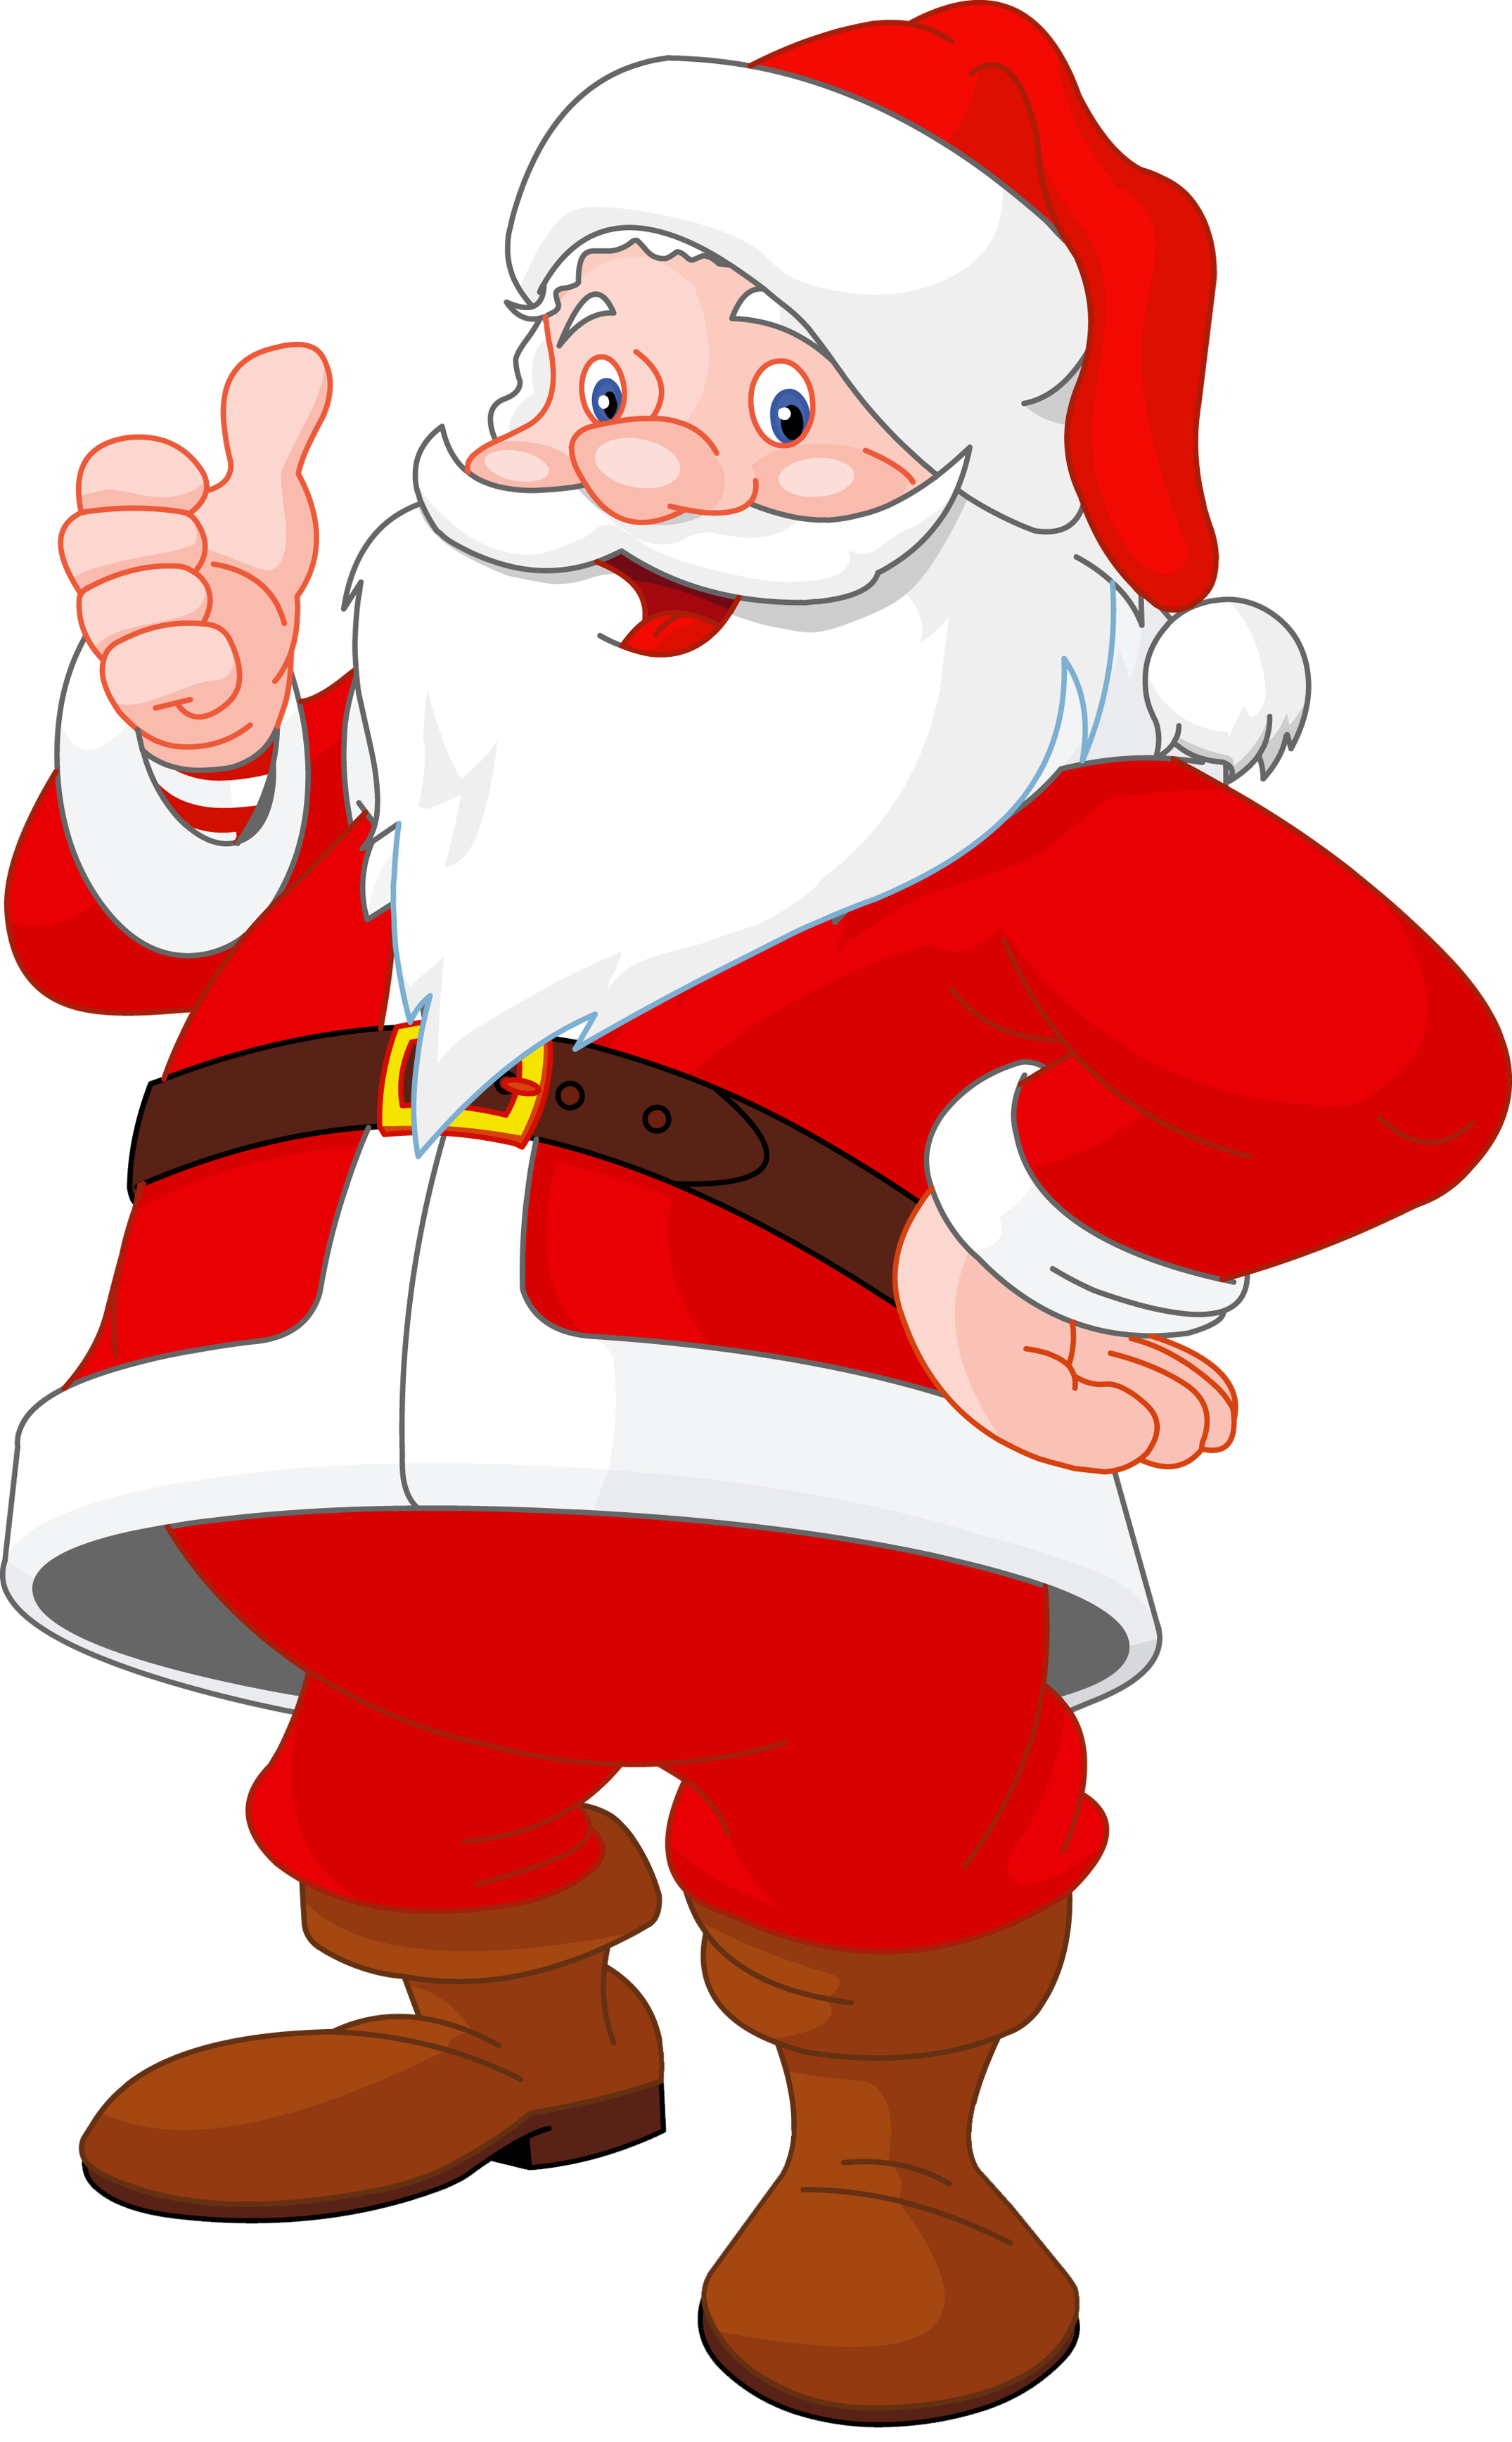 Santa claus list clipart picture black and white library Animated Santa Clipart Group (50+) picture black and white library